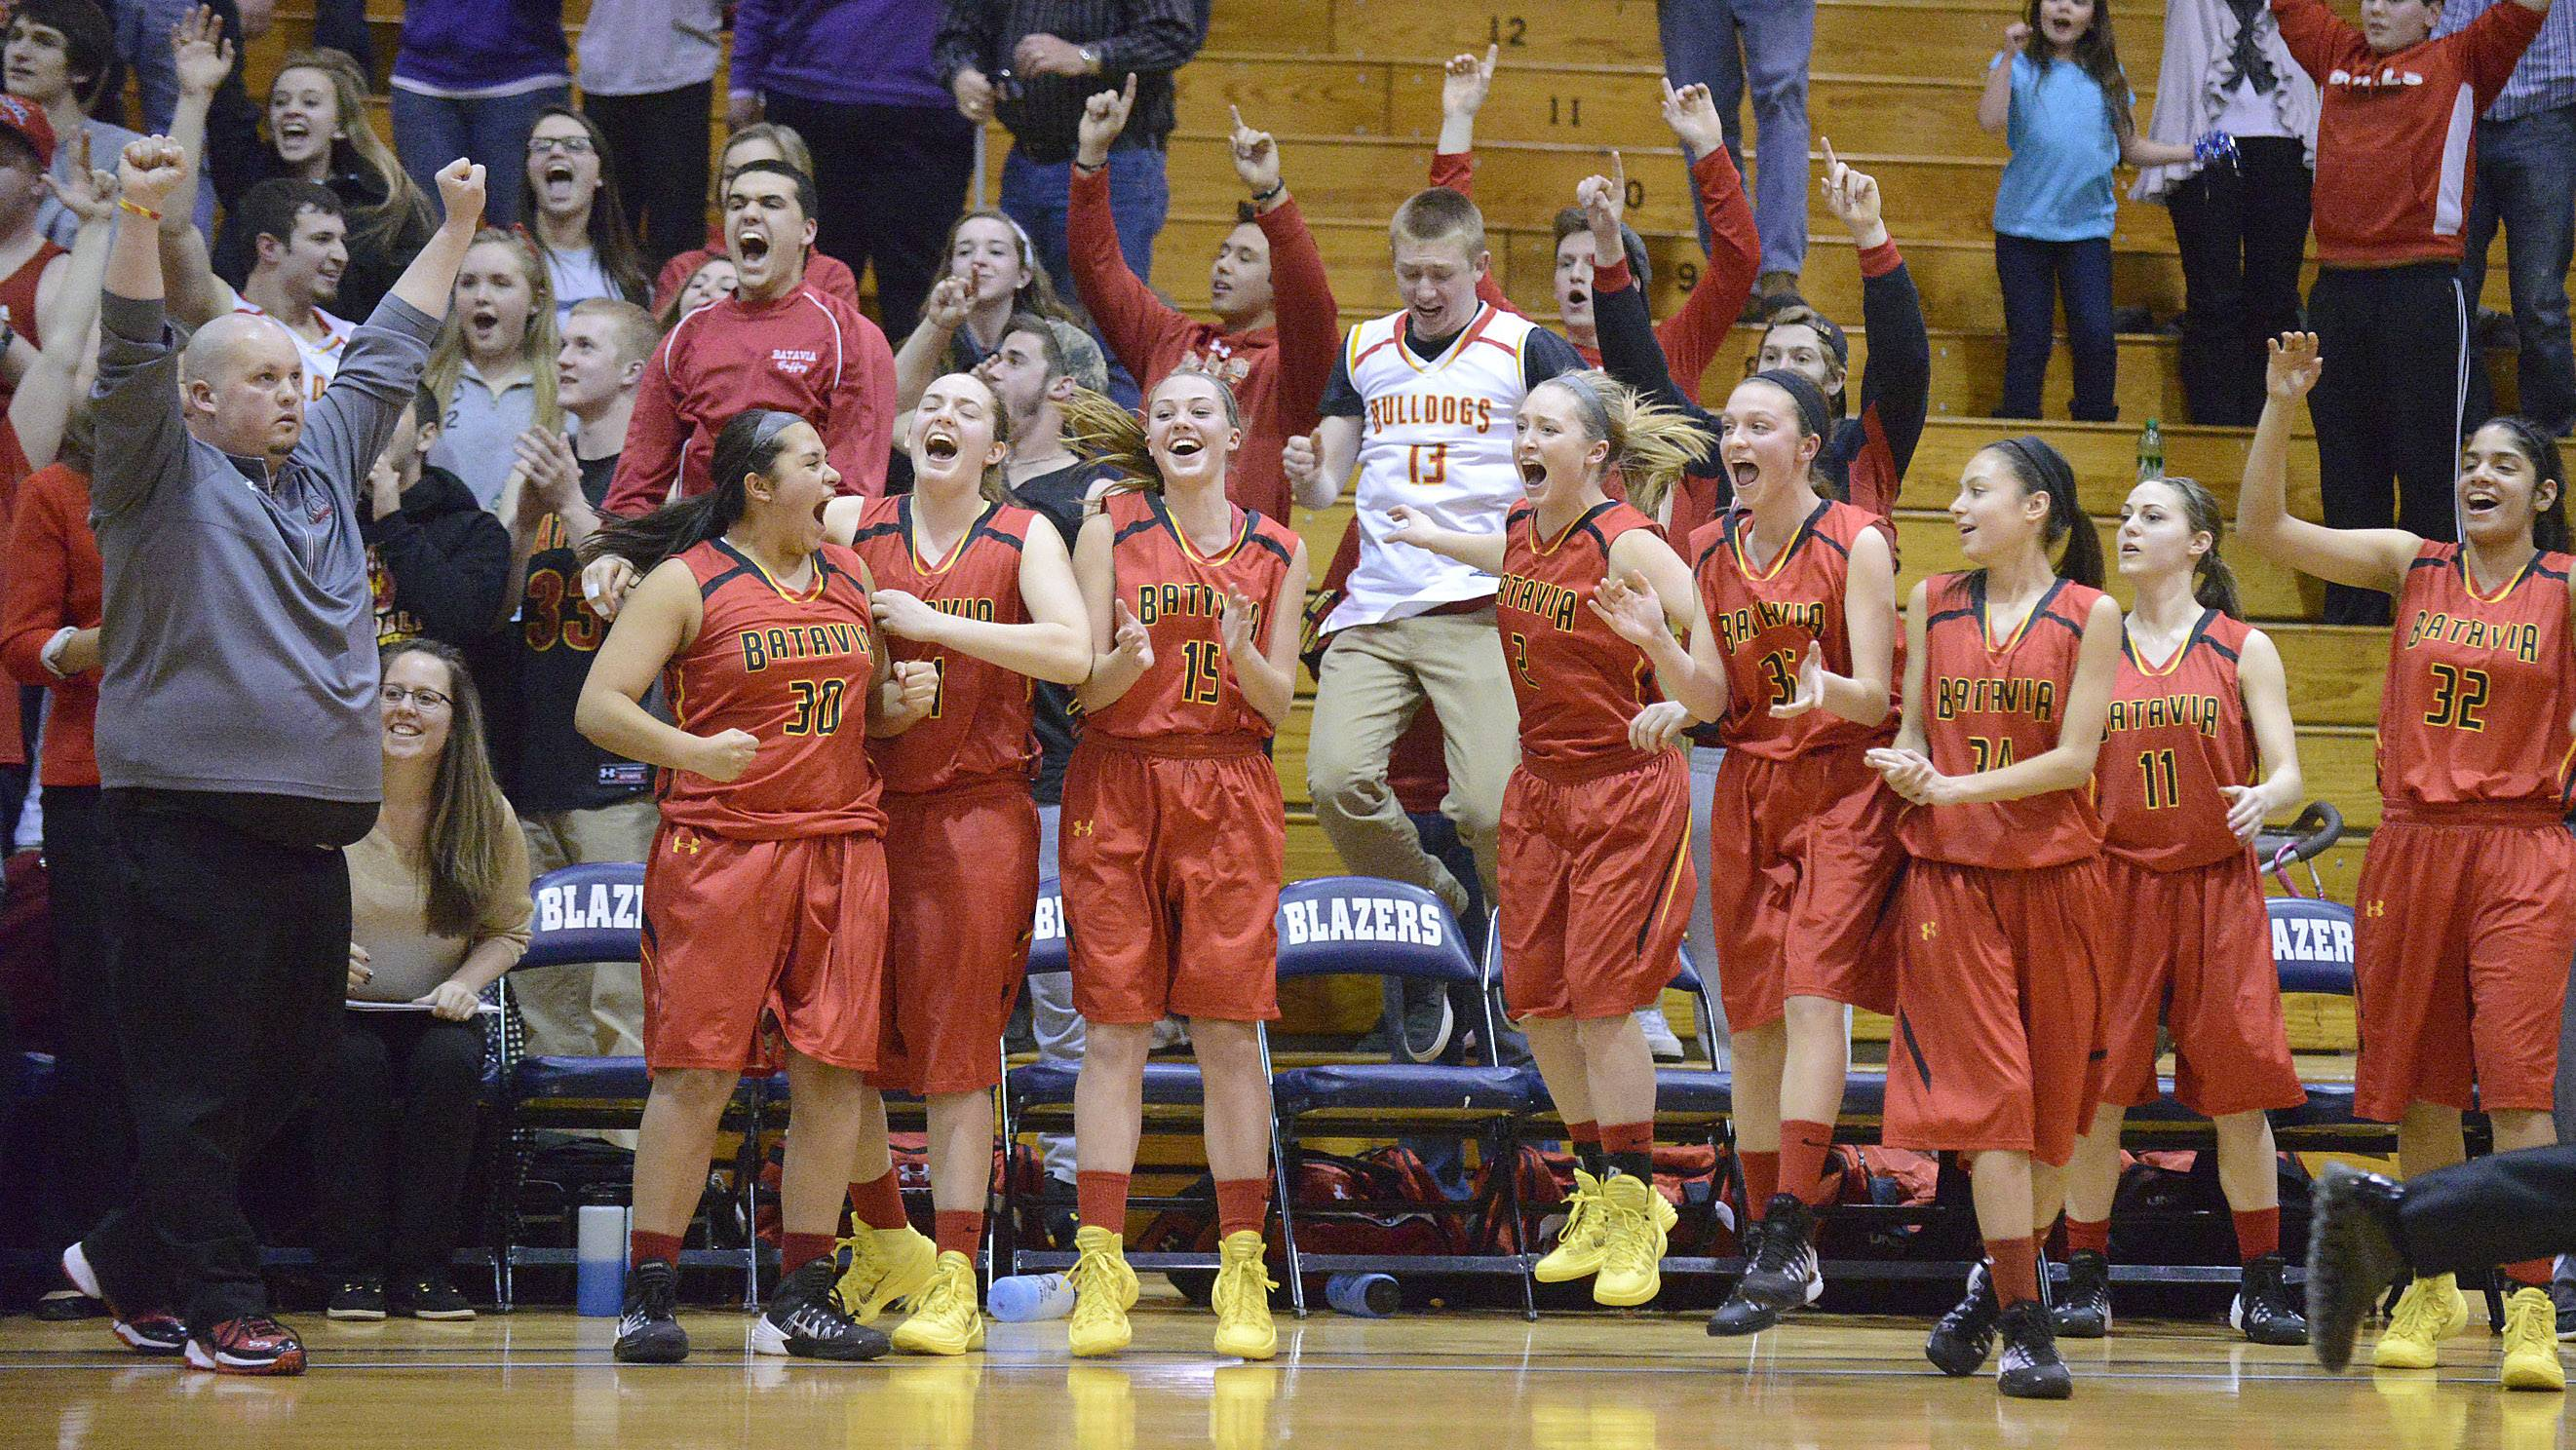 Batavia's head coach Kevin Jensen, far left, and the Bulldogs react to winning the 4A sectional semifinal vs. Downers Grove North at Addison Trail High School in Addison on Tuesday, February 25.